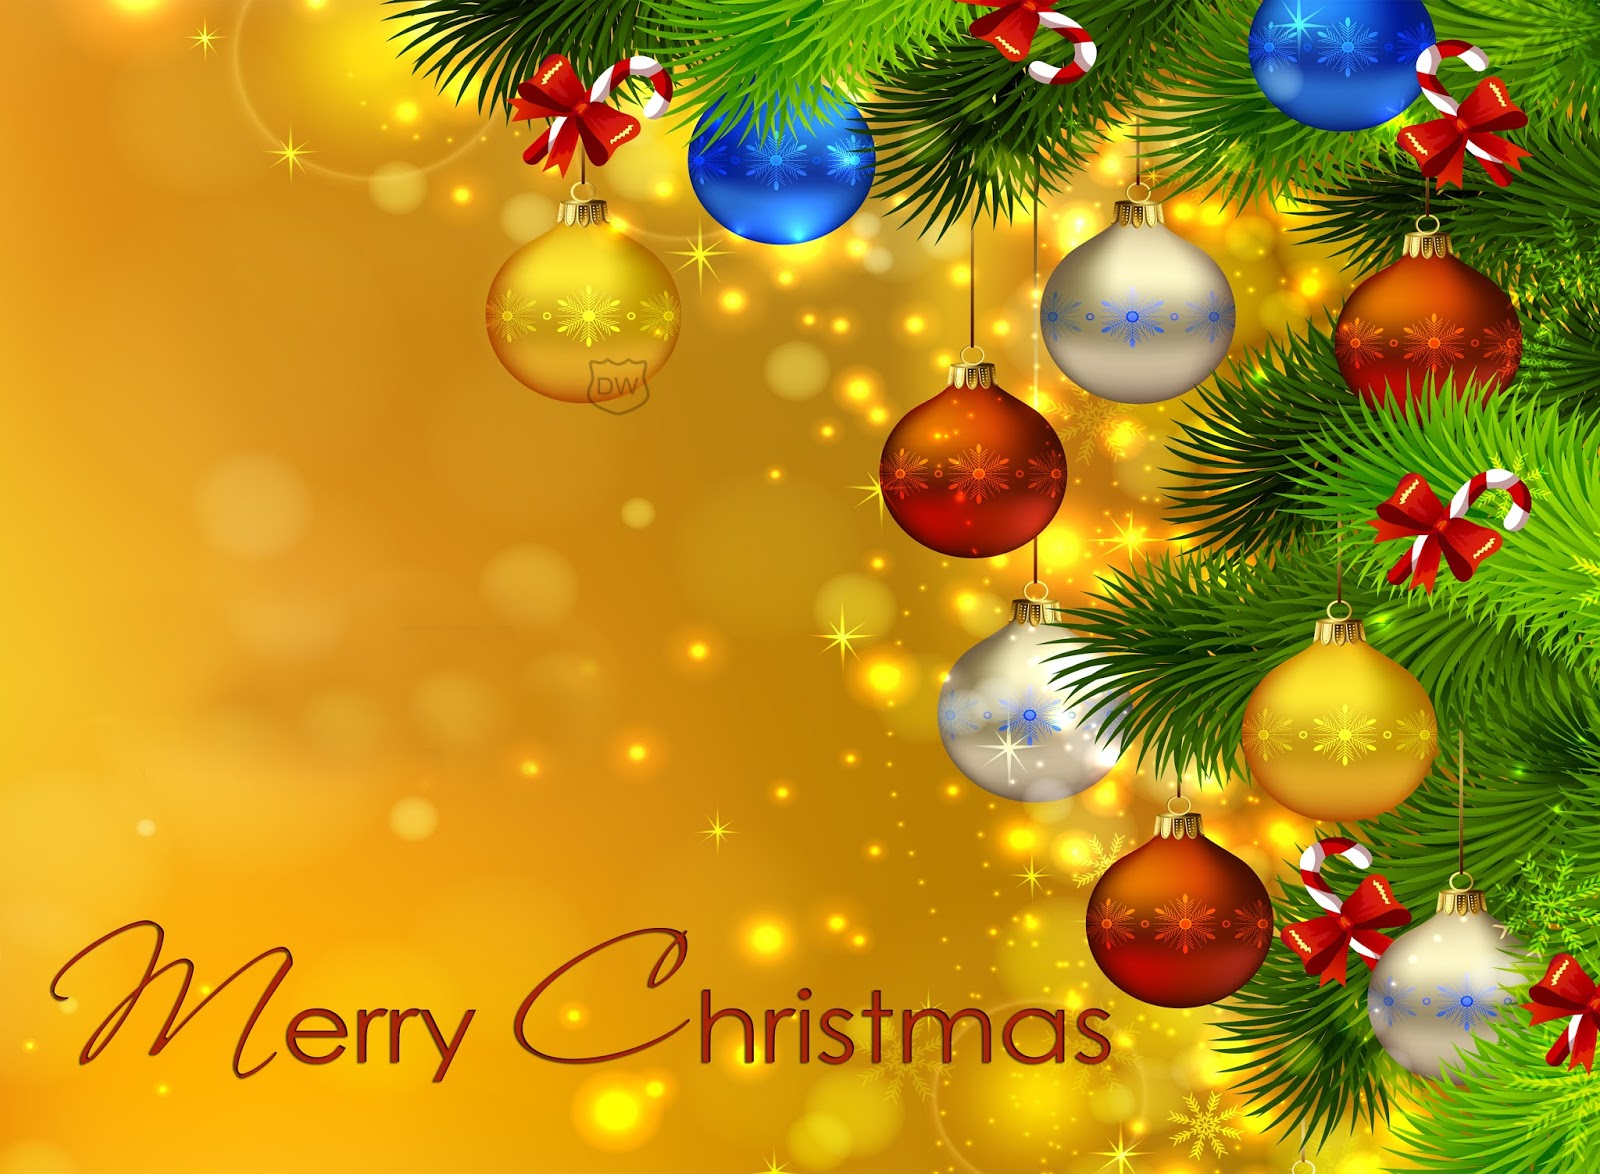 in the russian countries christmas eve was celebrated on 7th january due to 12 days difference in the newer gregorian and older julian calenders - How Do You Say Merry Christmas In Australia